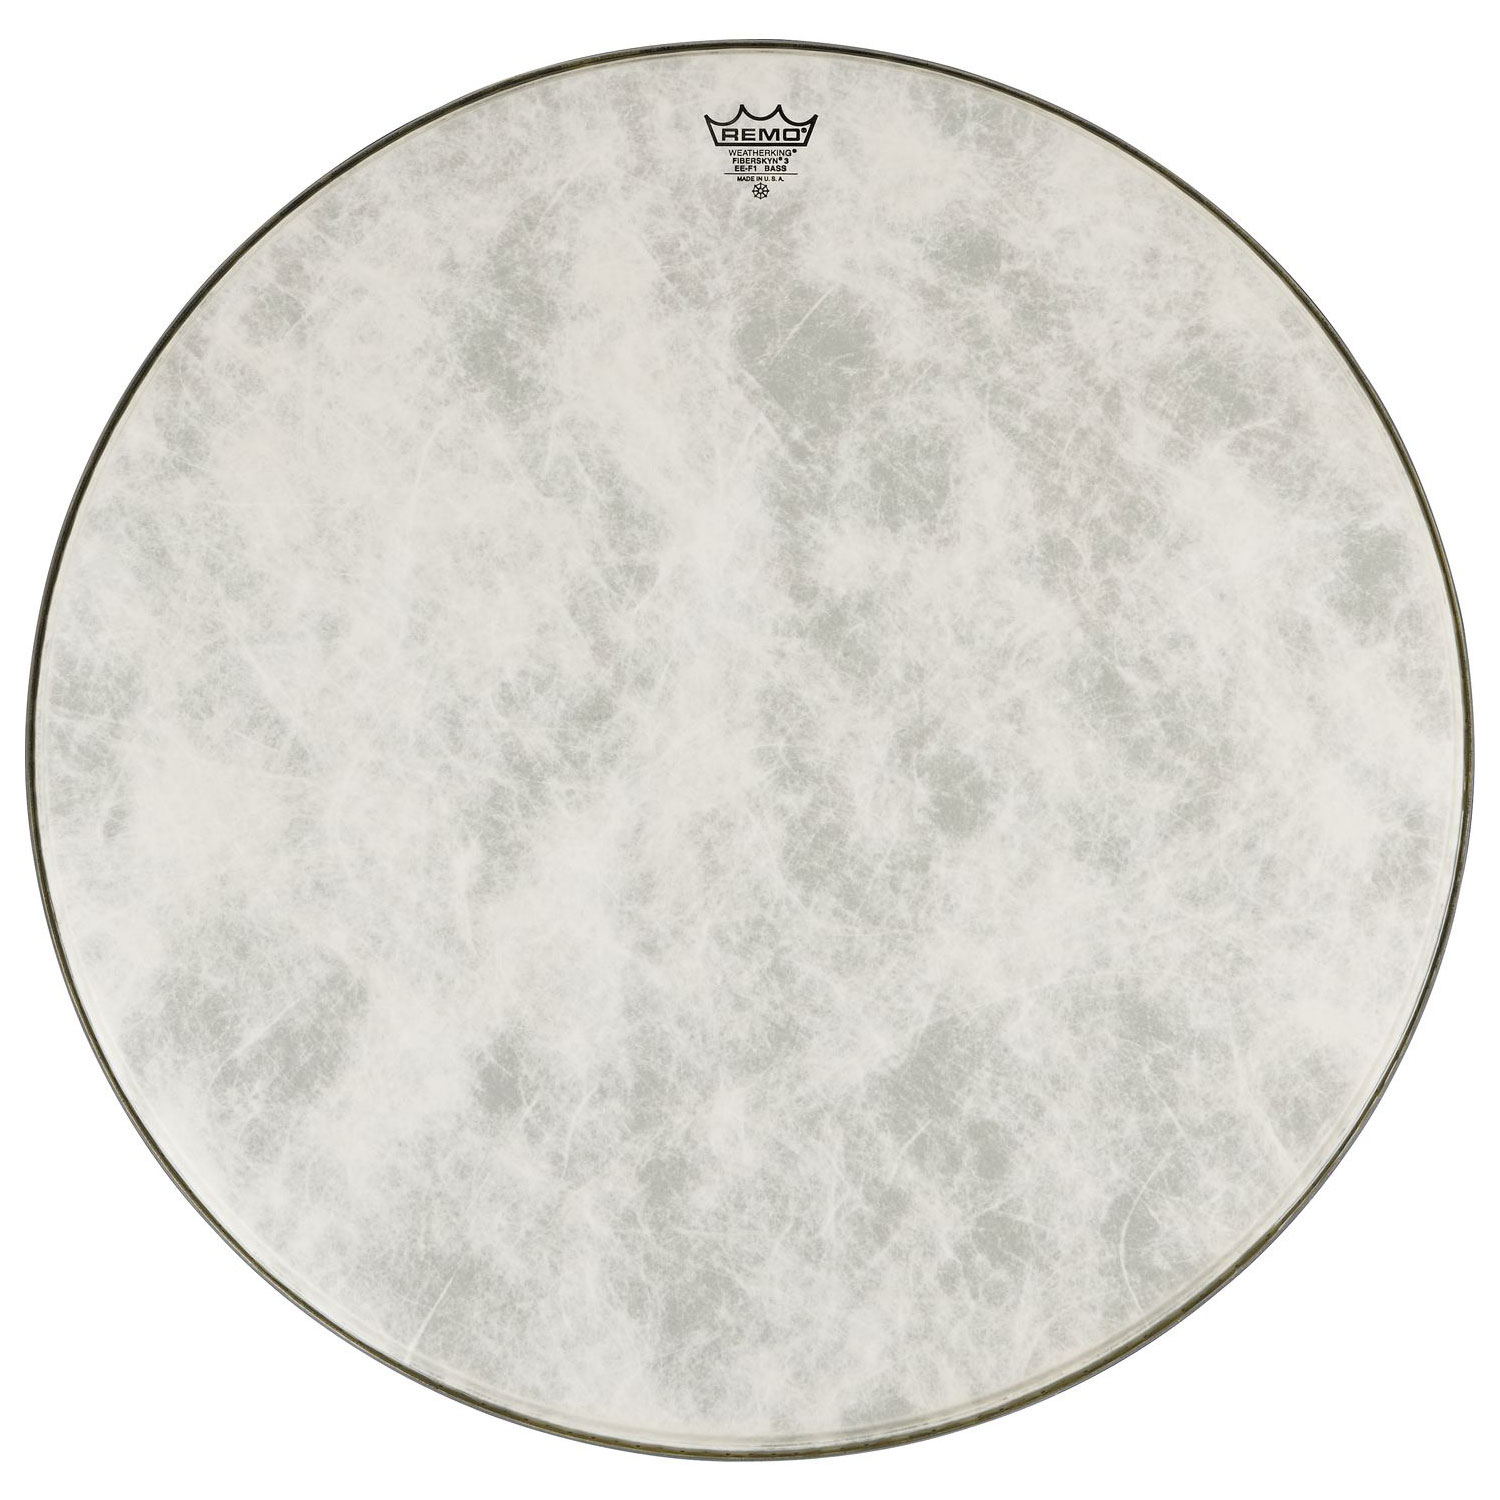 remo 20 powerstroke p3 fiberskyn bass drum head p3 1520 fa. Black Bedroom Furniture Sets. Home Design Ideas